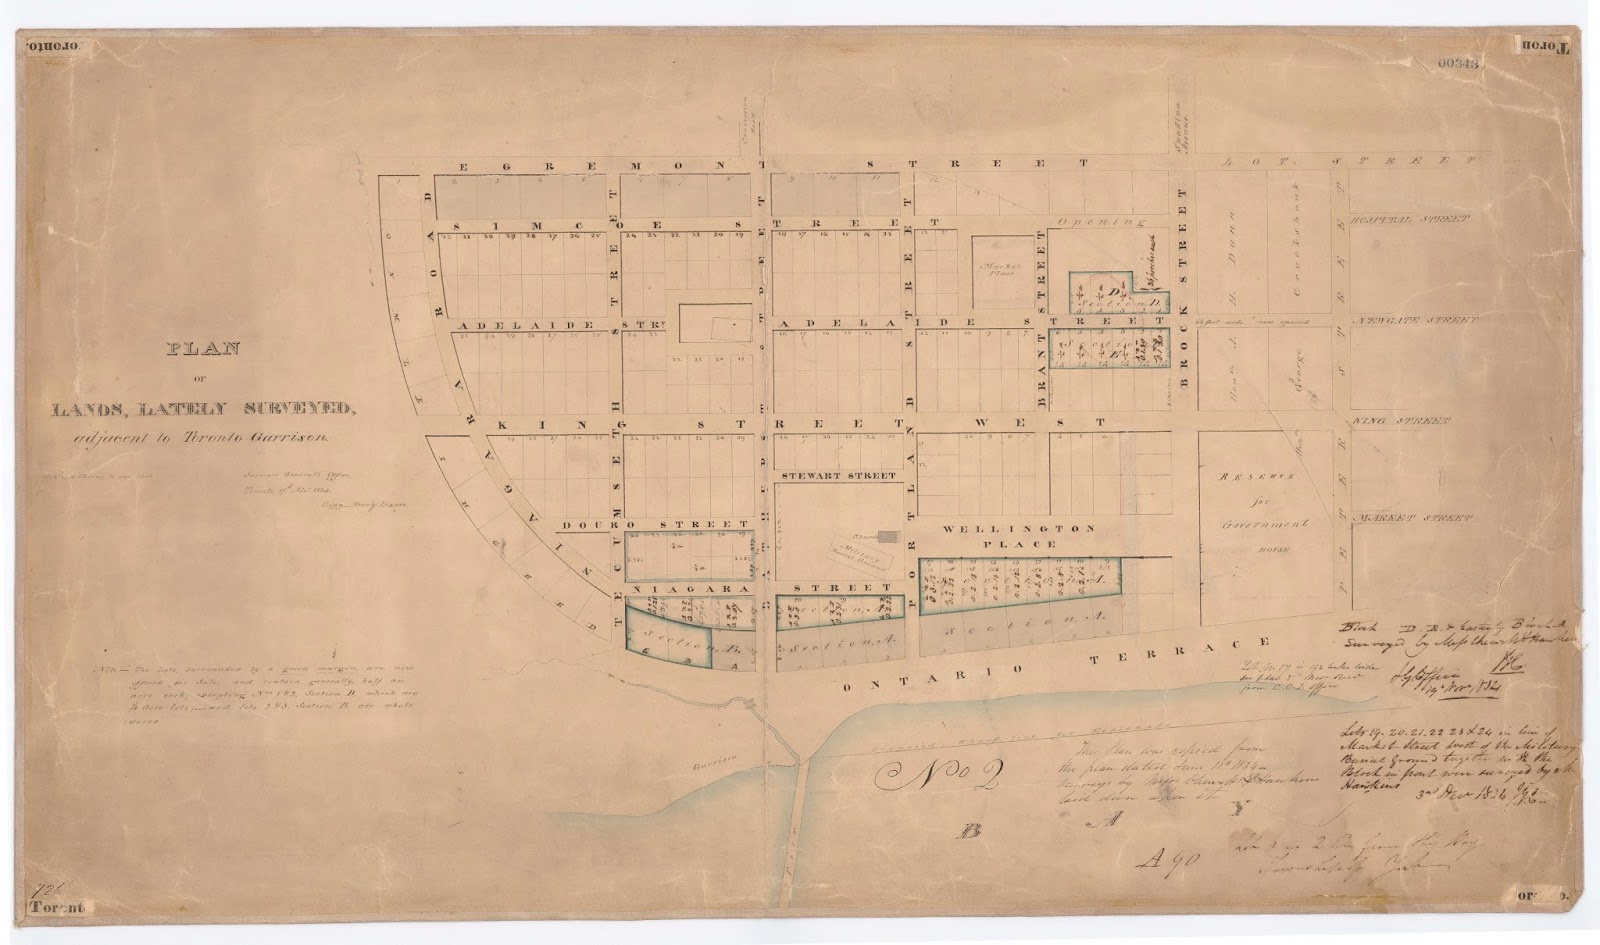 Map: Plan of lands, lately surveyed, adjacent to Toronto Garrison. Surveyor General's office, Toronto 17th Novr 1834, Copy – Henry Lizars.